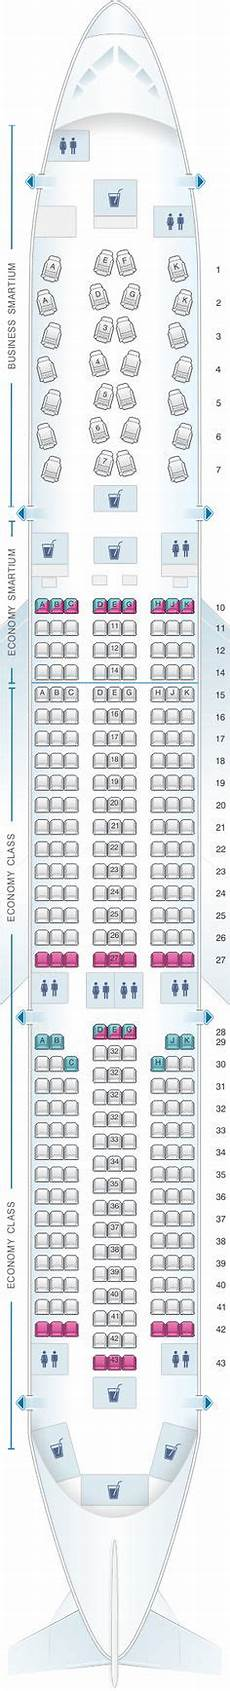 Airbus A350 900 Seating Chart Seat Map Cathay Pacific Airways Airbus A350 900 35g